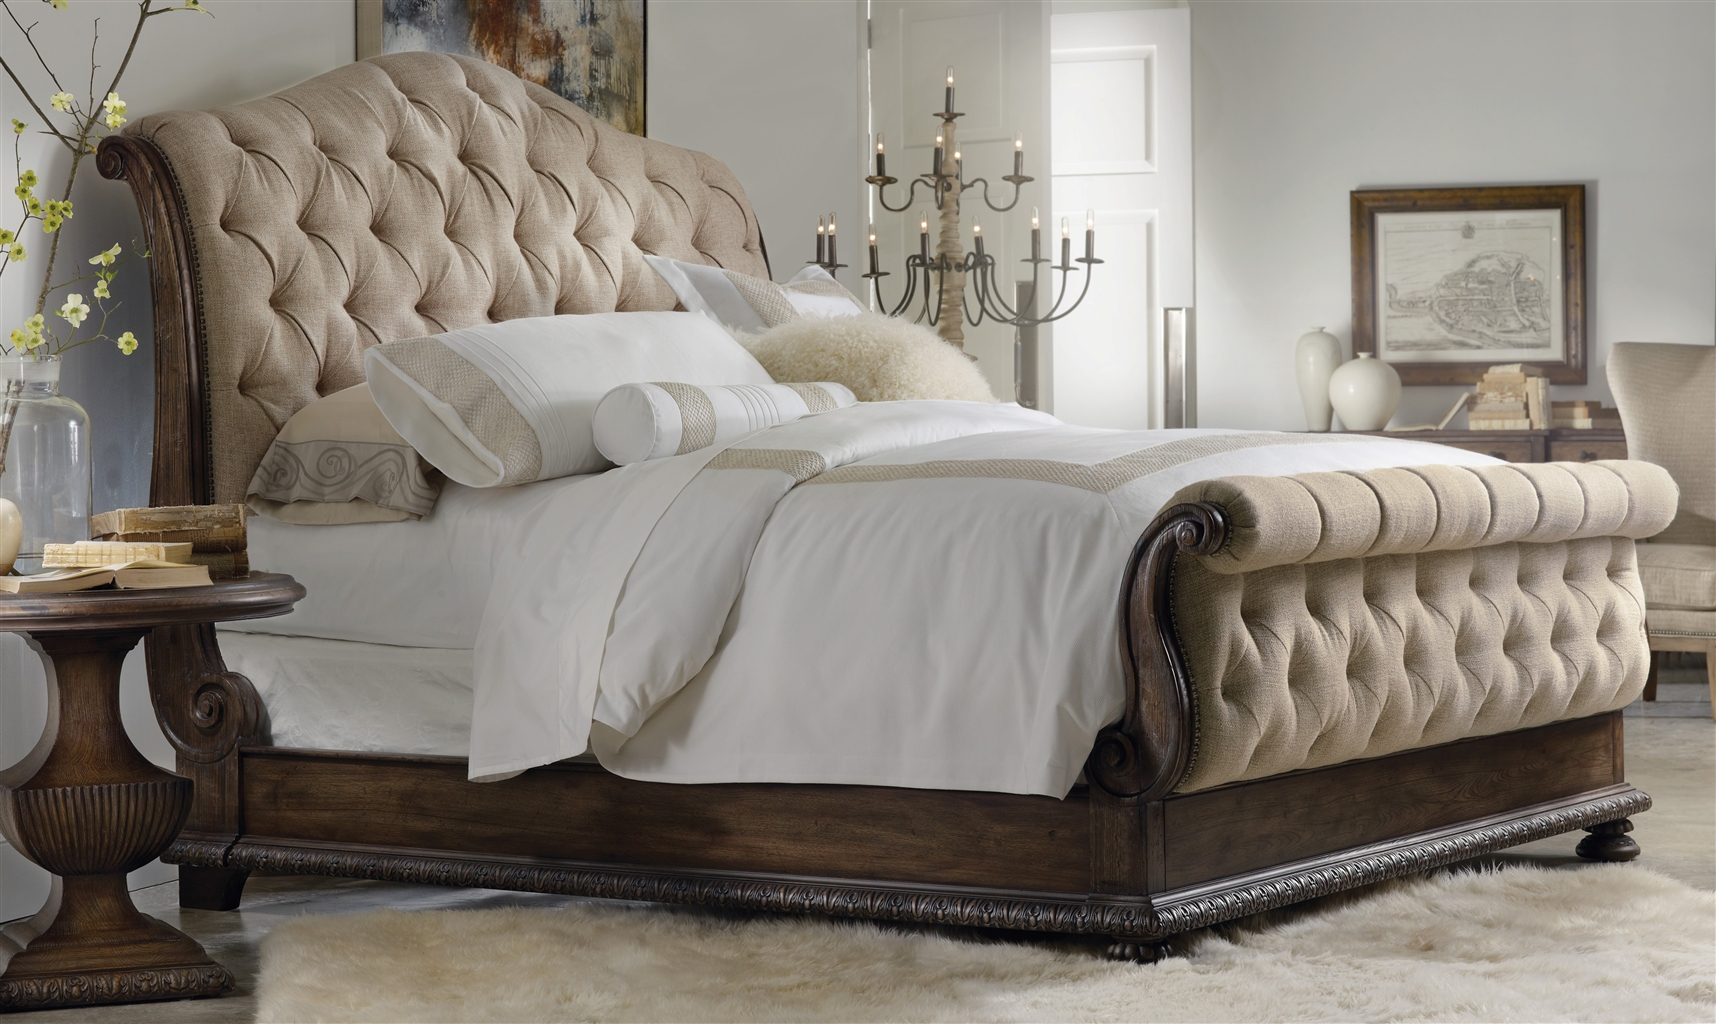 Tufted sleigh bed luxury furniture for Luxury furniture